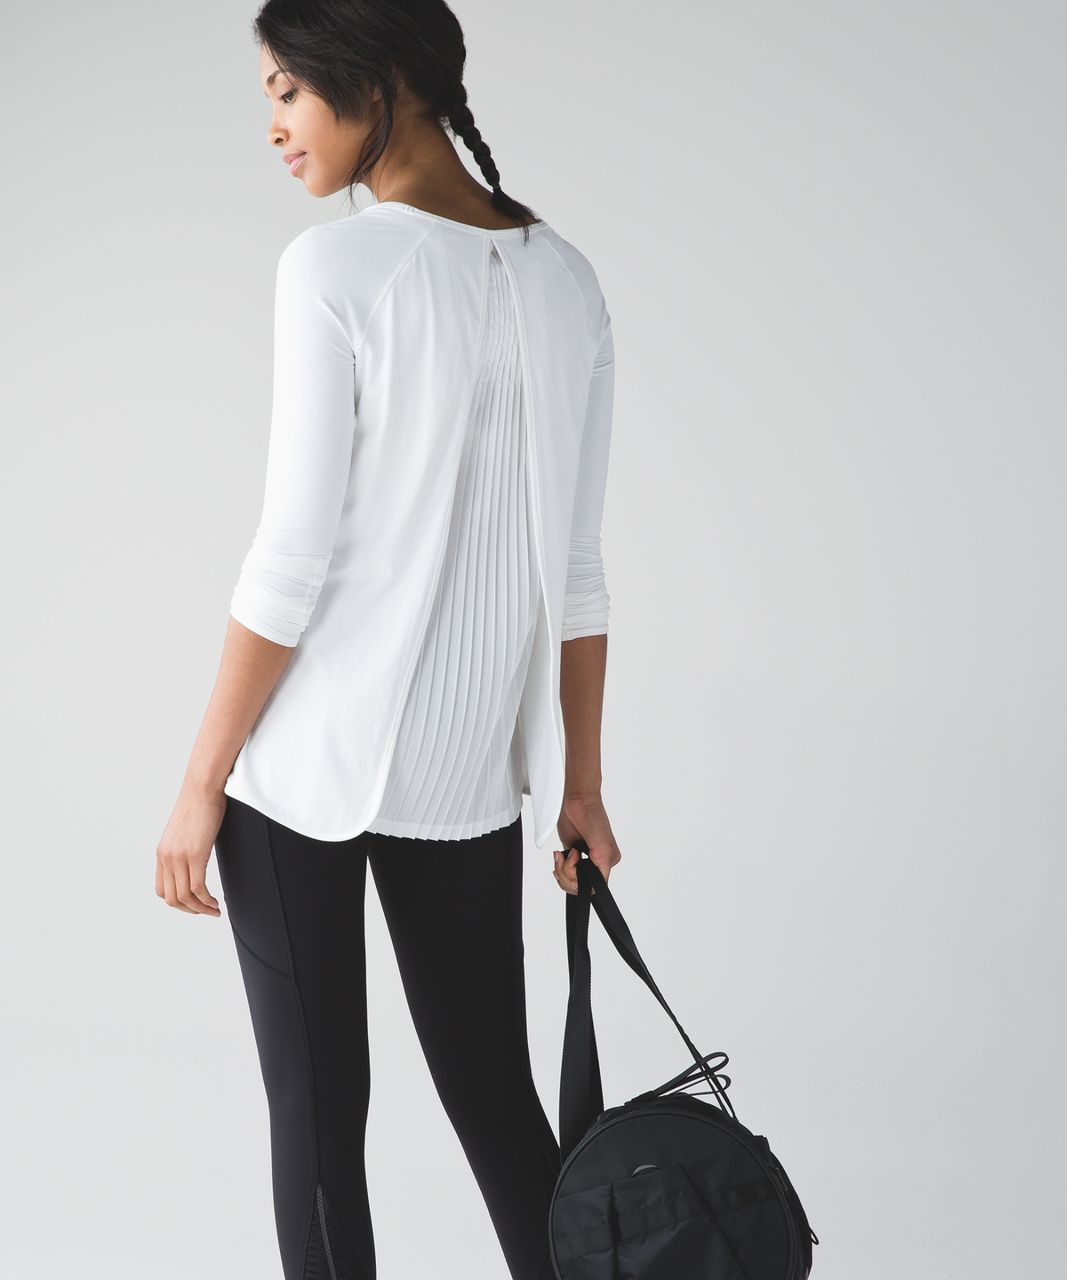 Lululemon Making Moves Long Sleeve - White